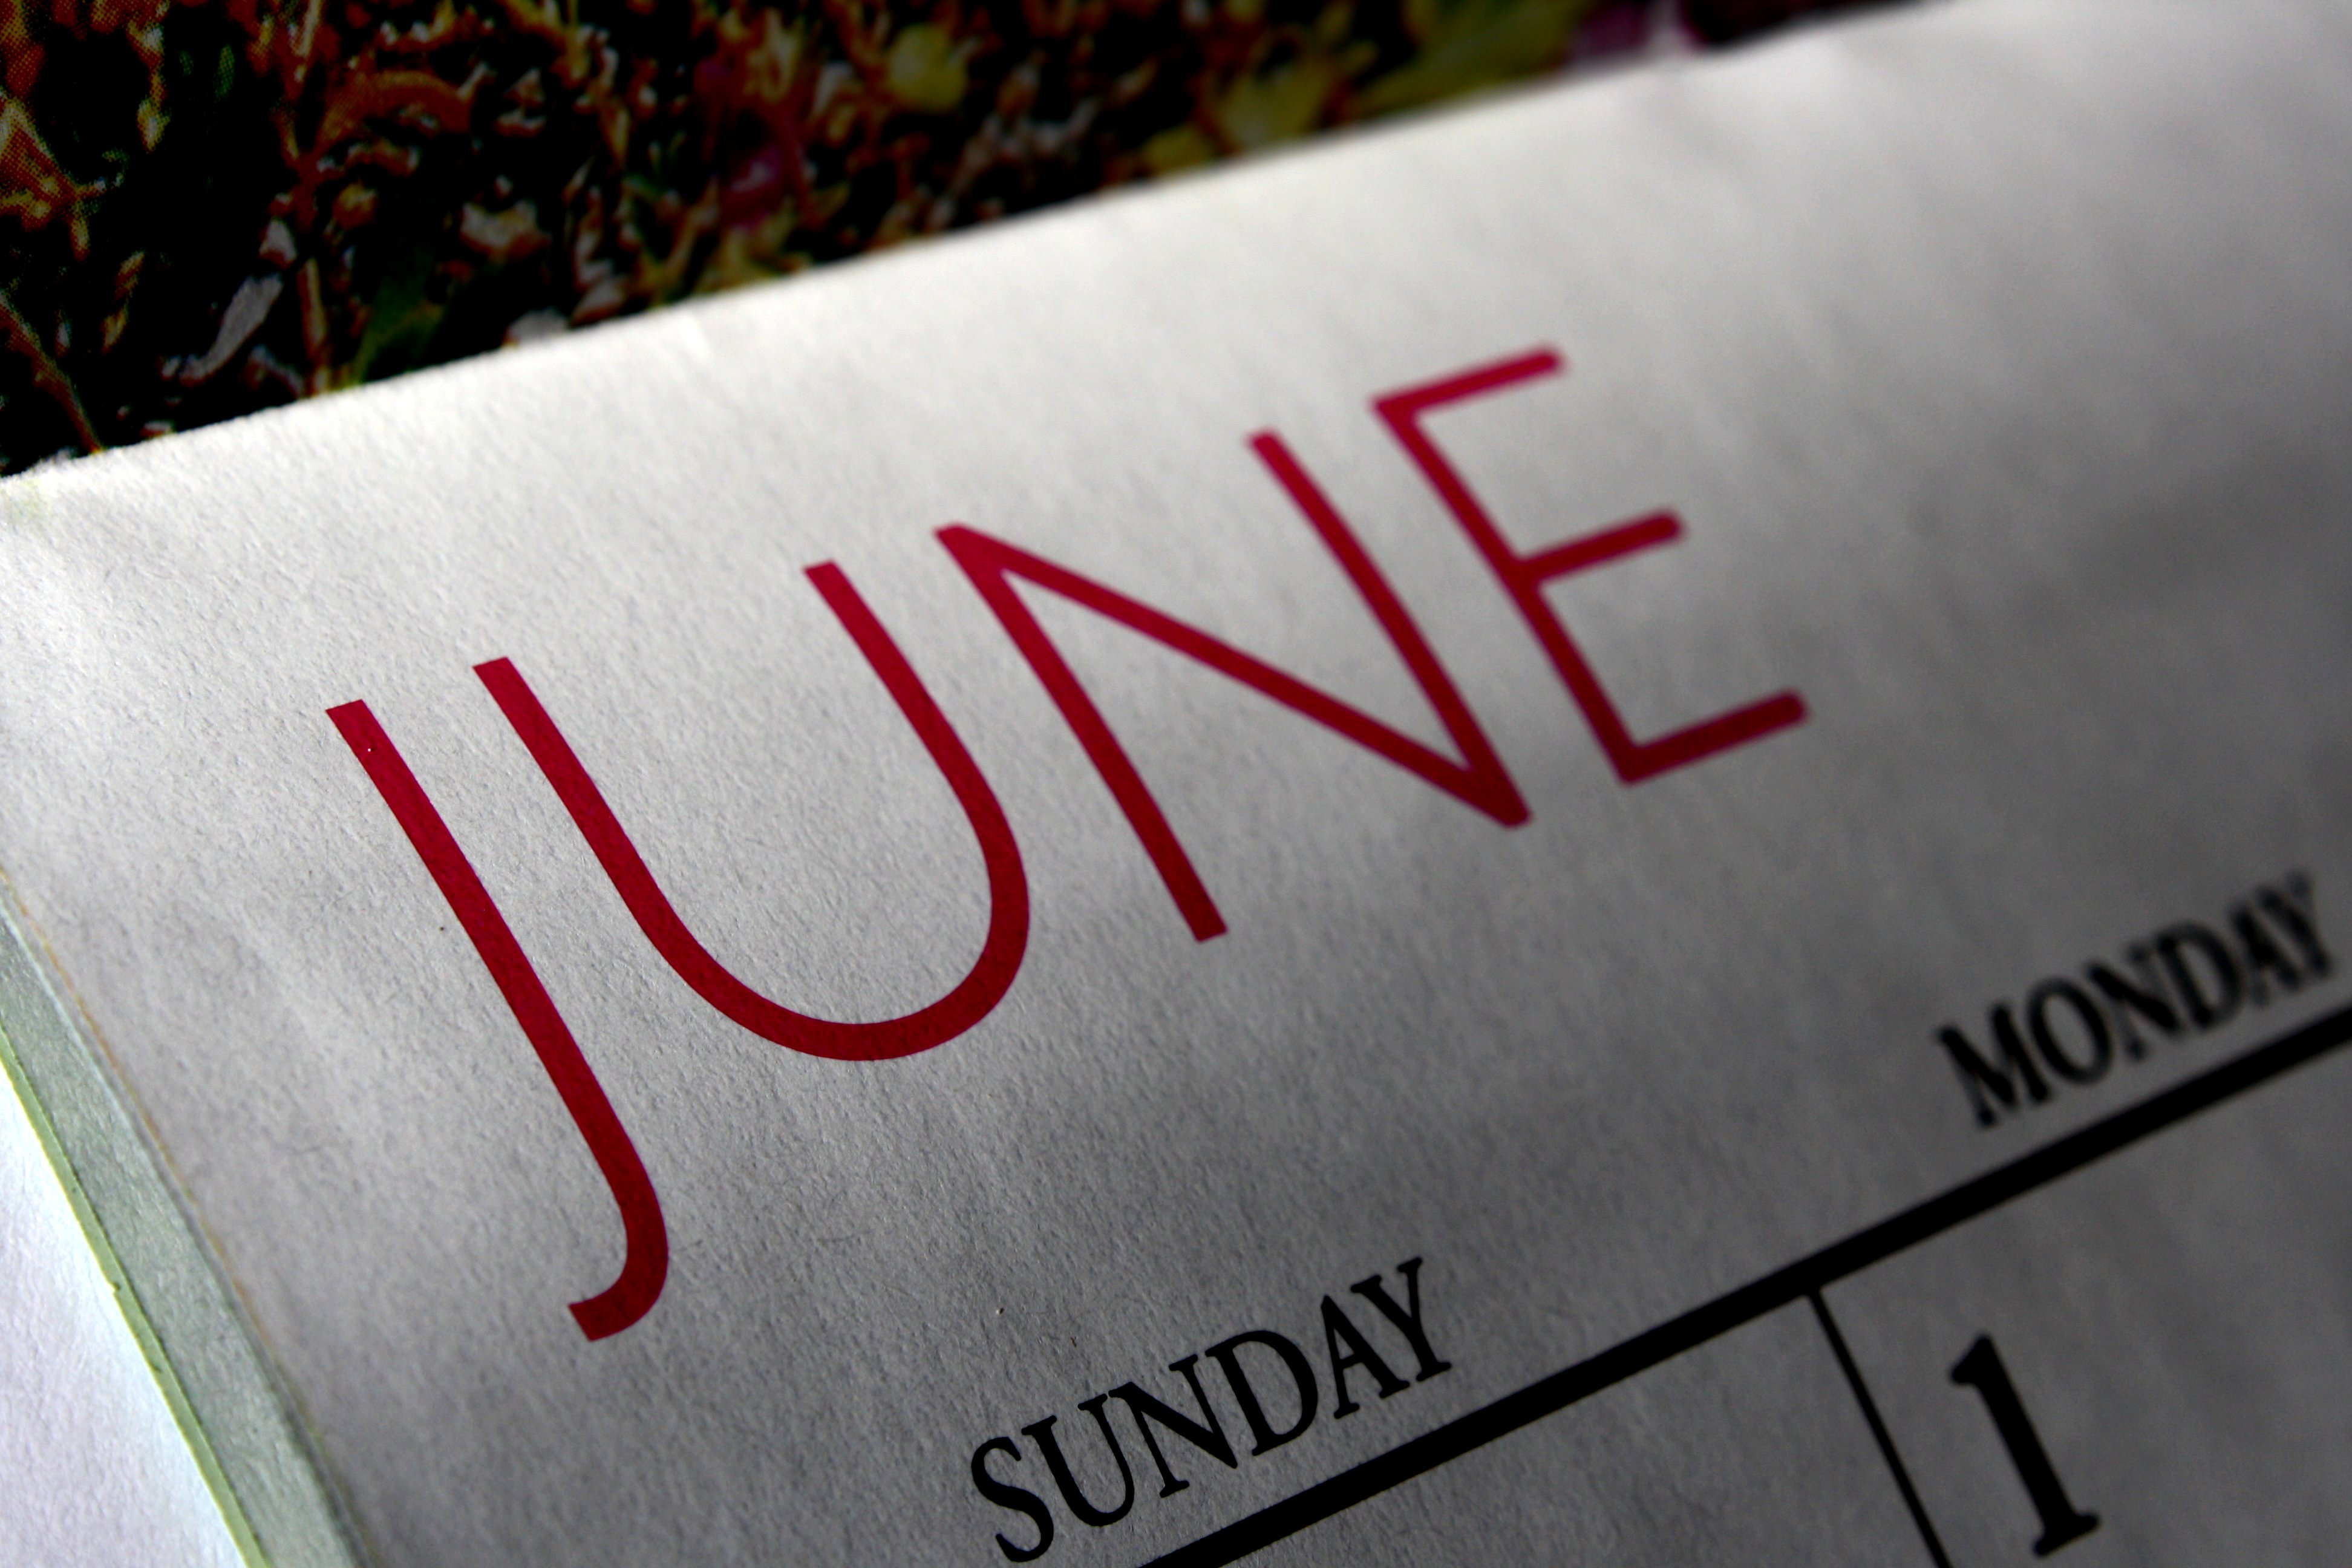 June Calendar Picture | Free Photograph | Photos Public Domain